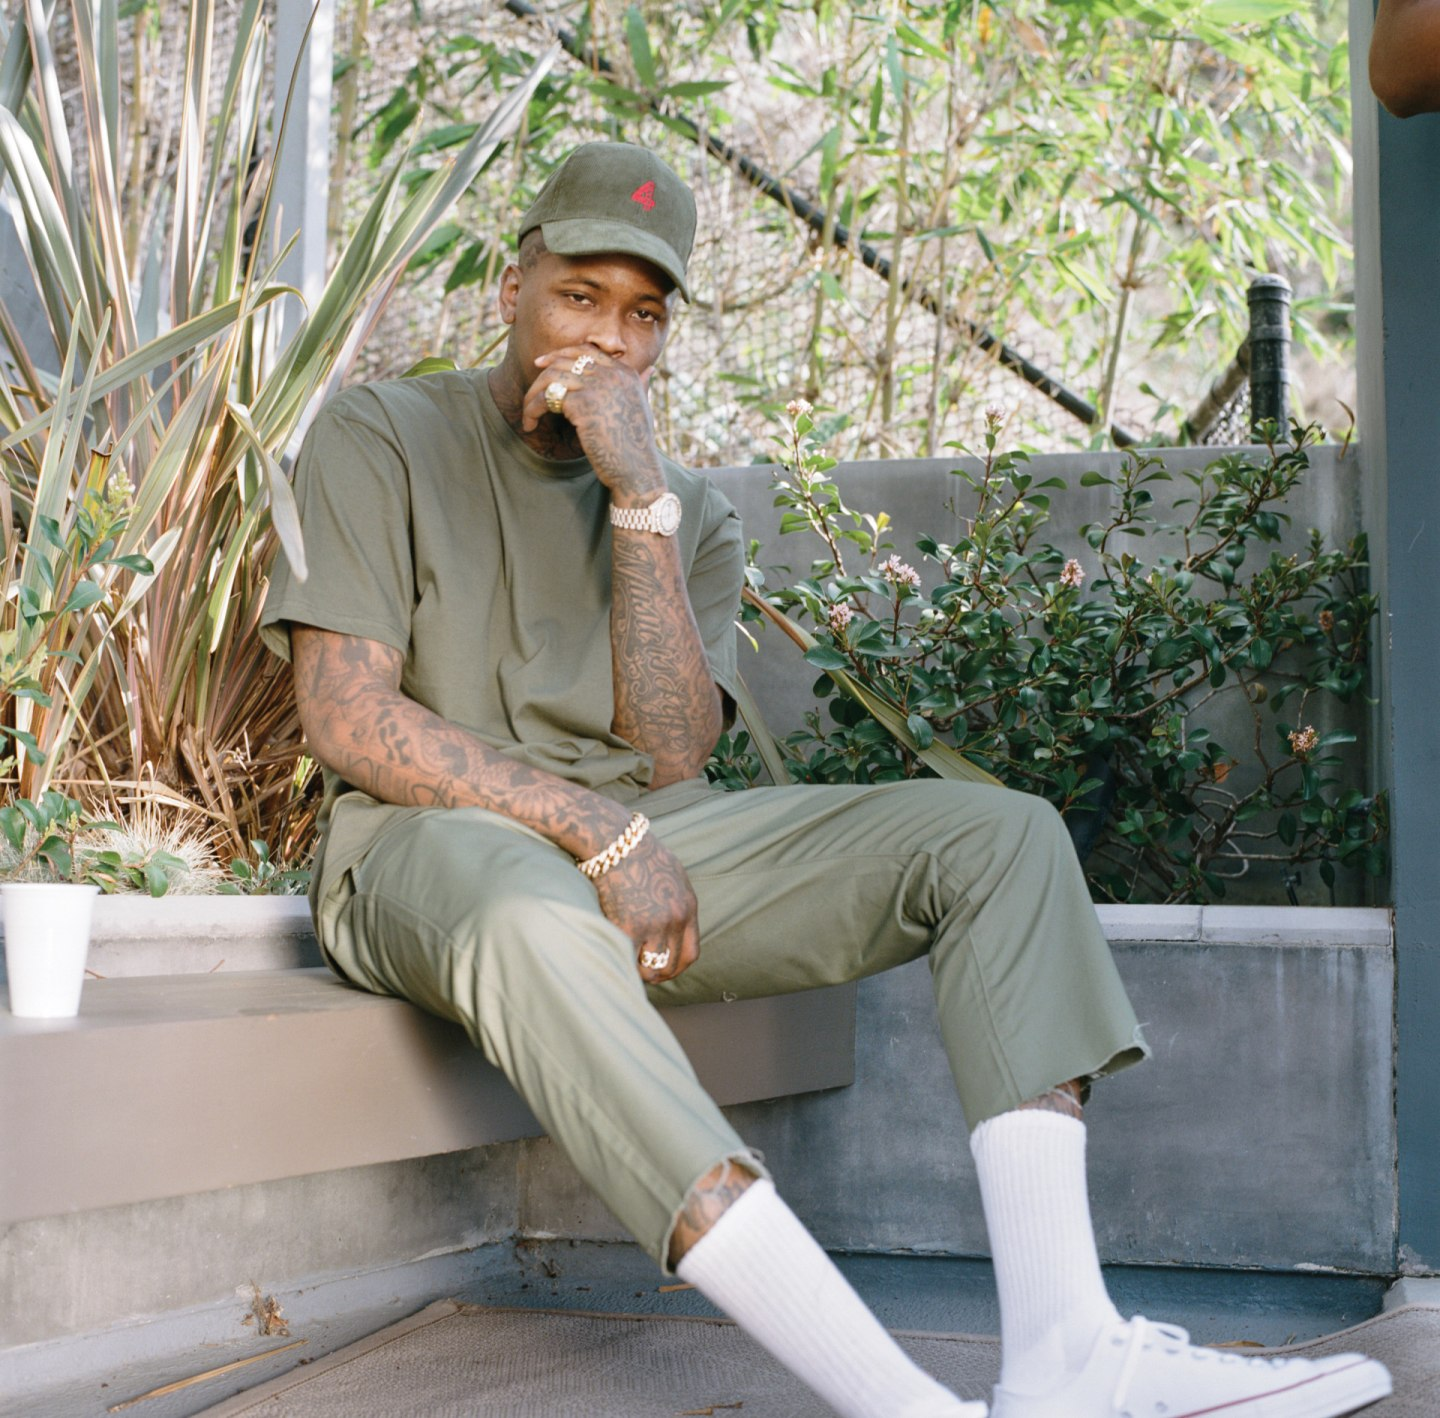 On <i>Stay Dangerous</i>, YG arrives at a career crossroads